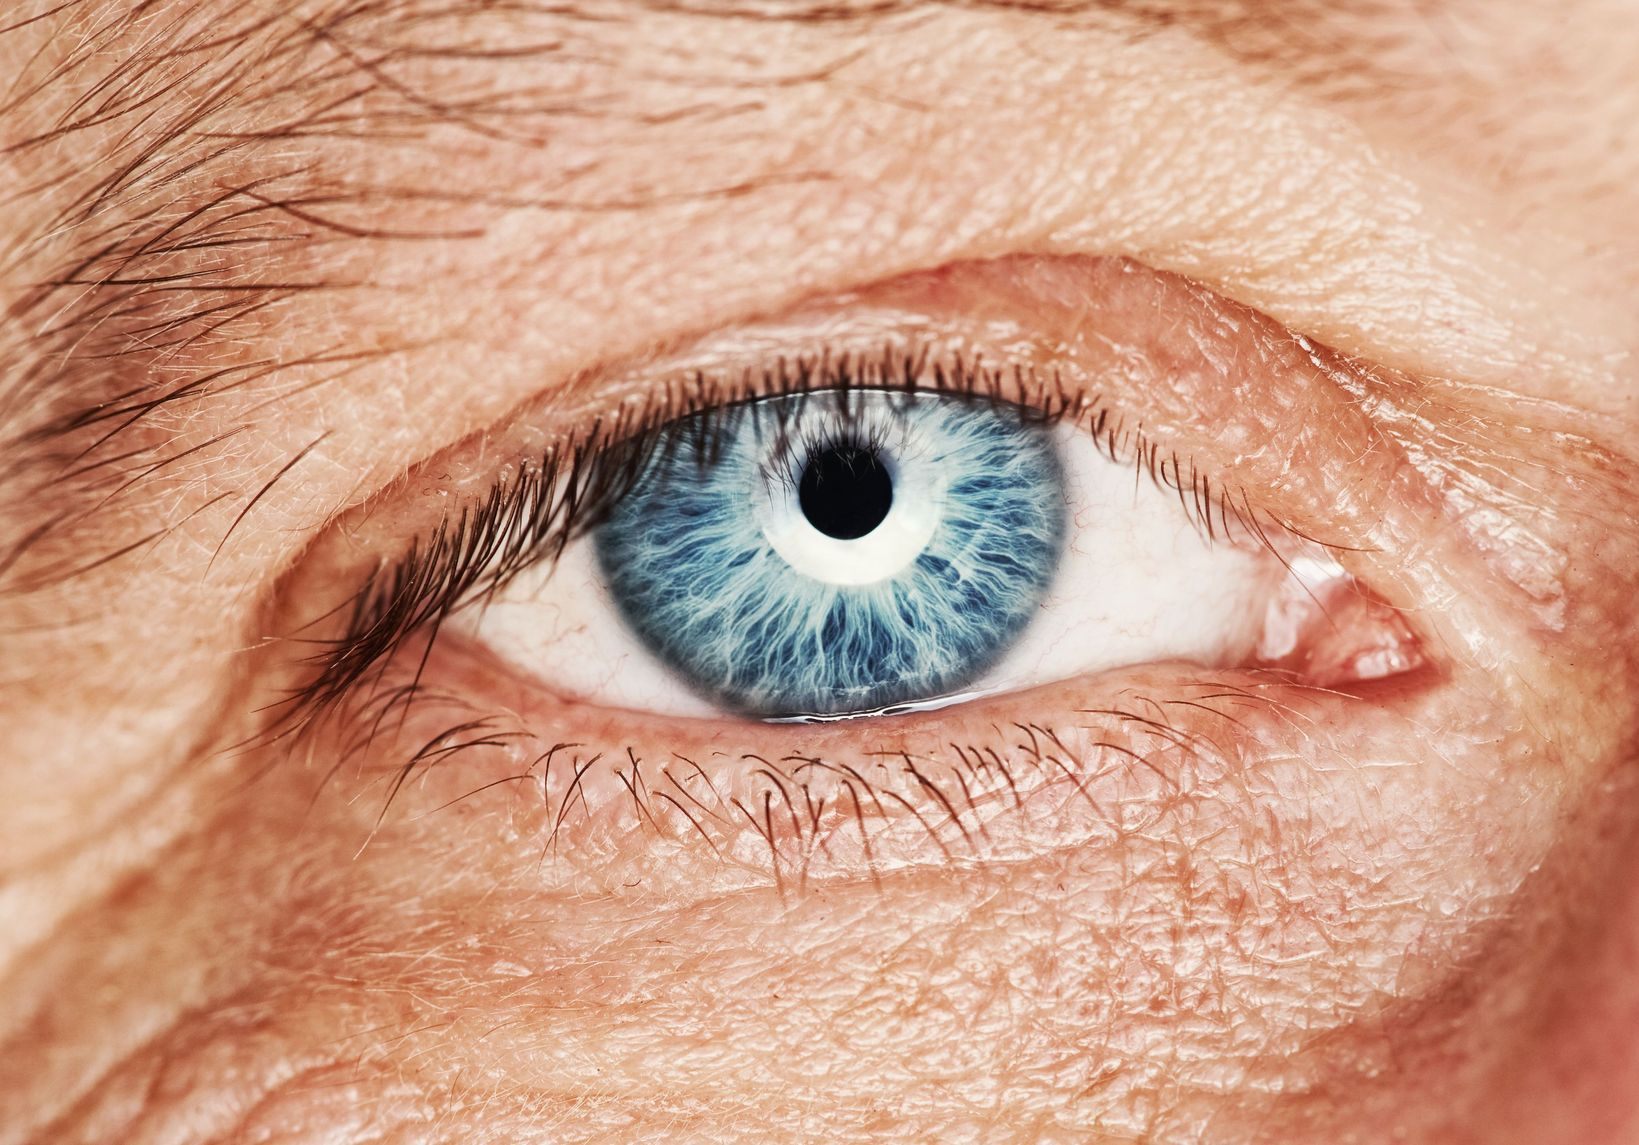 What Is Floppy Eyelid Syndrome And How Is It Related To Sleep Apnea